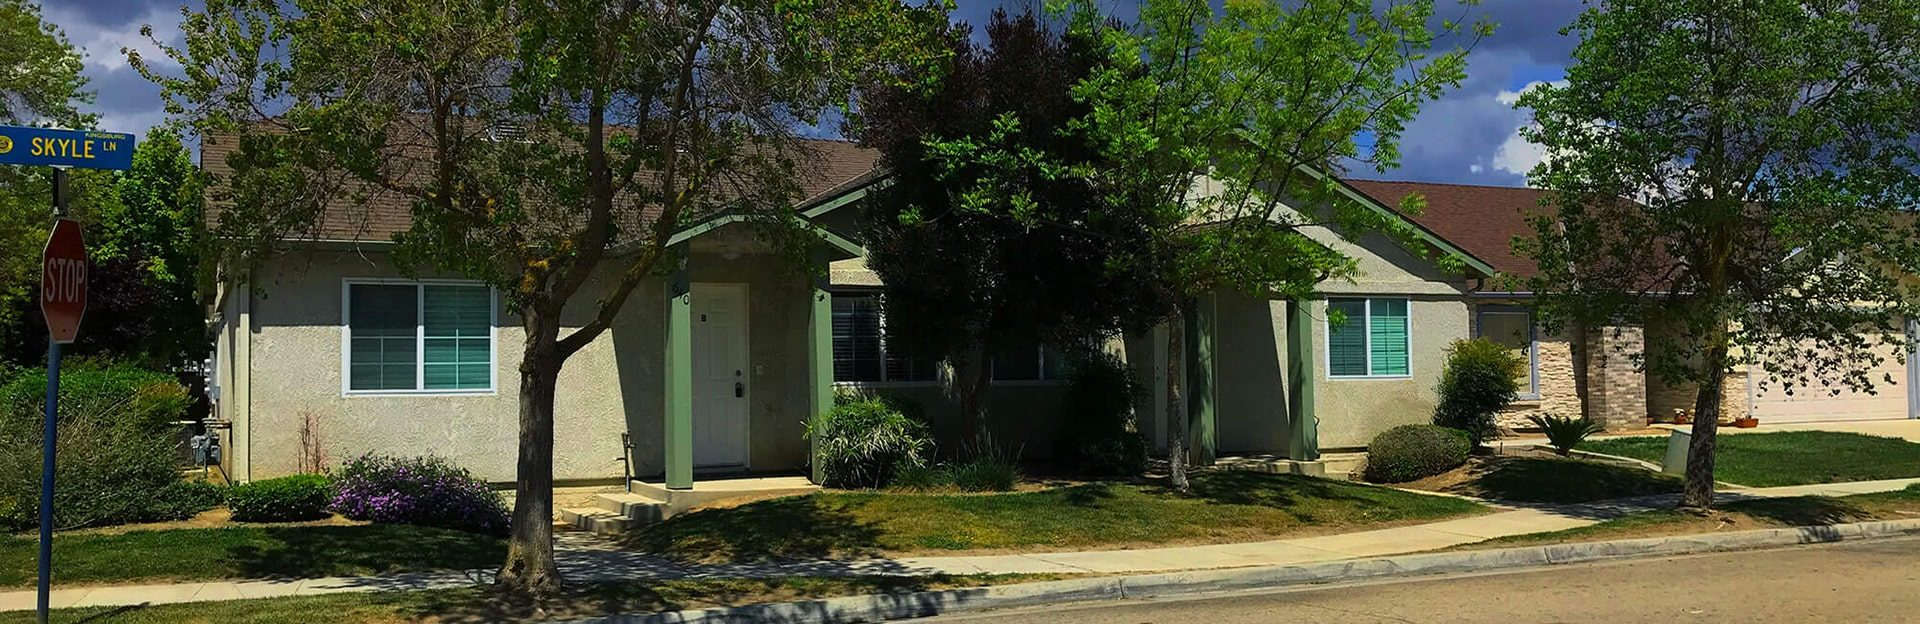 A beige house with a touch of green color and trees in front; The Equity Group Values Tenants